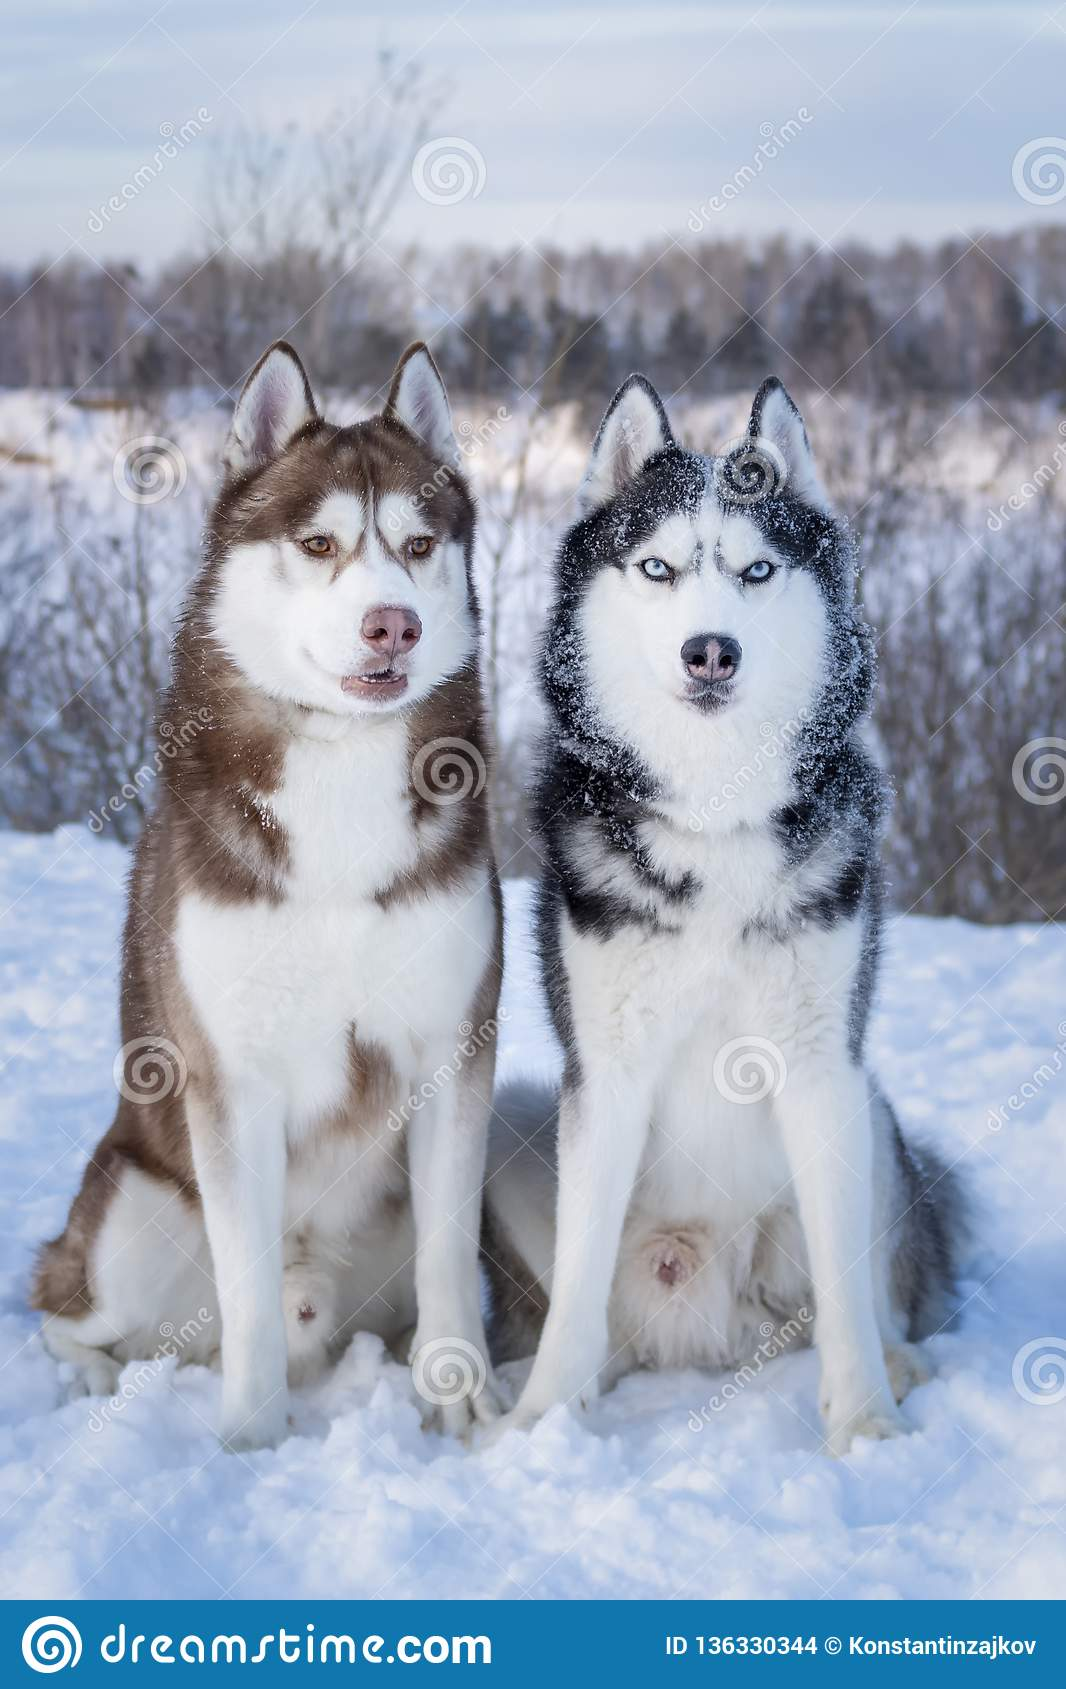 Siberian Husky Dogs Two Beautiful Siberian Huskies With Mesmerizing Eyes Eye Color Blue And Amber Stock Photo Image Of Color Winter 136330344